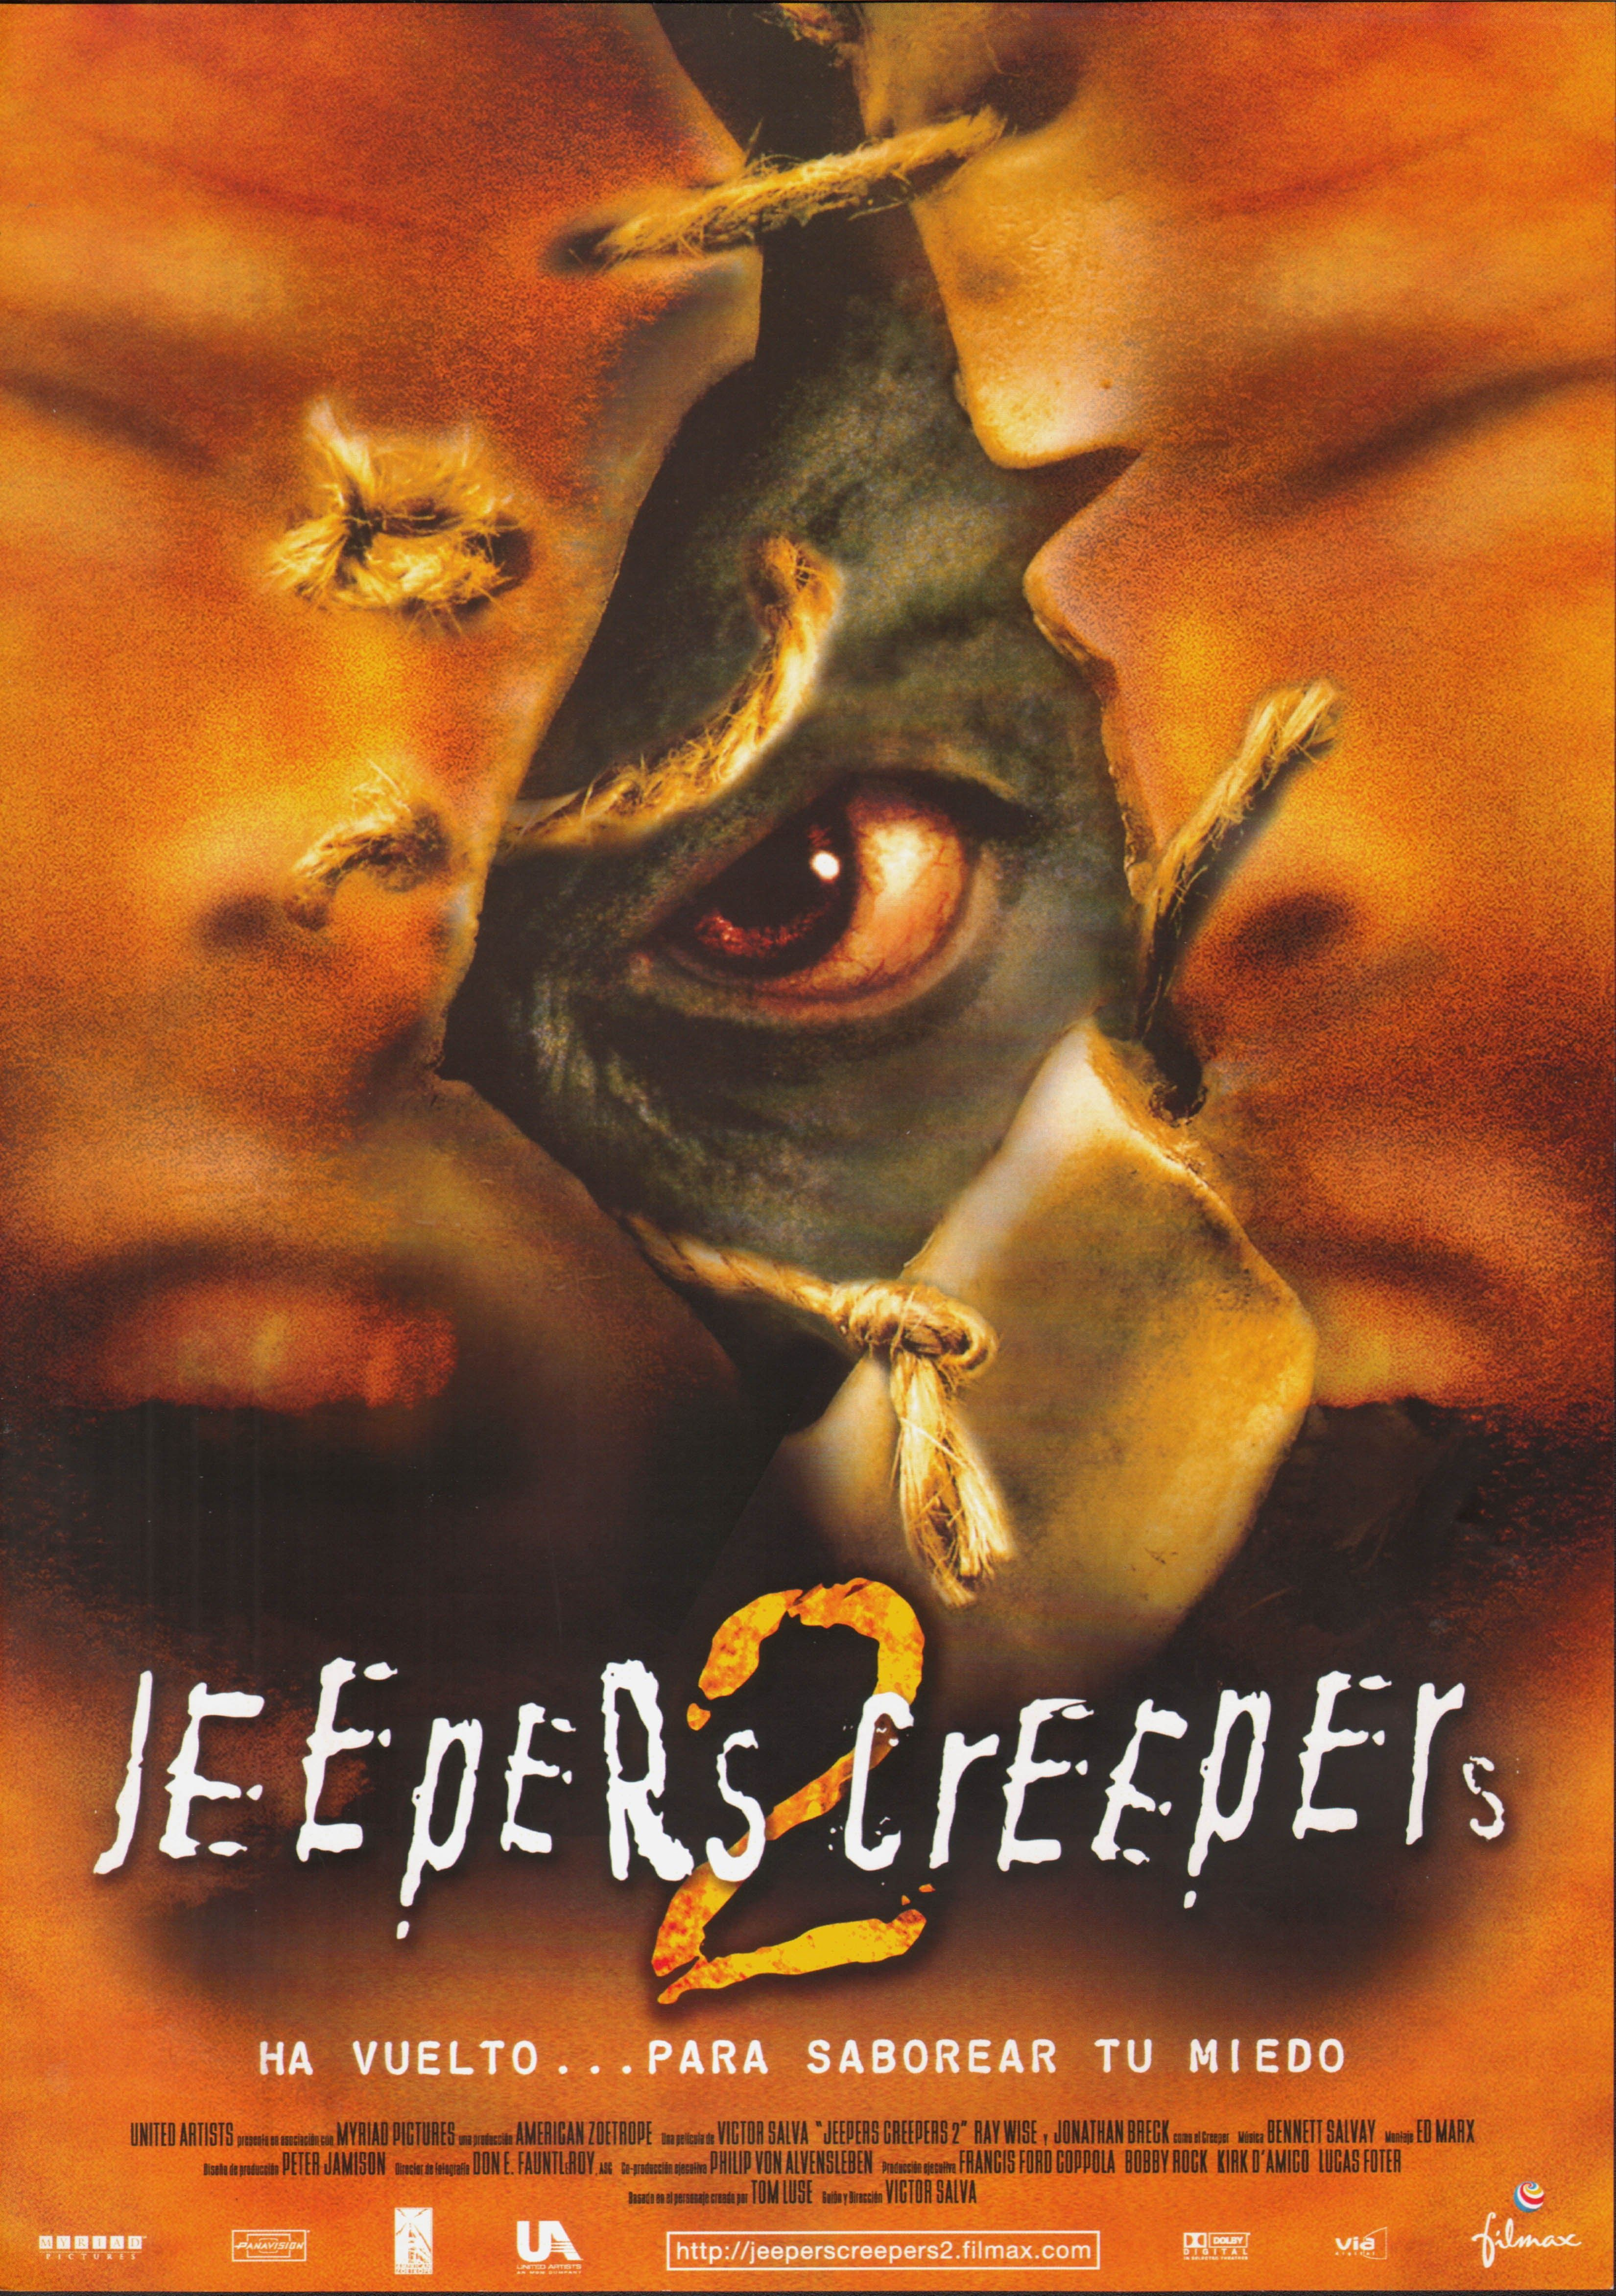 Jeepers Creepers 2 Jeepers Creepers Peliculas De Terror The